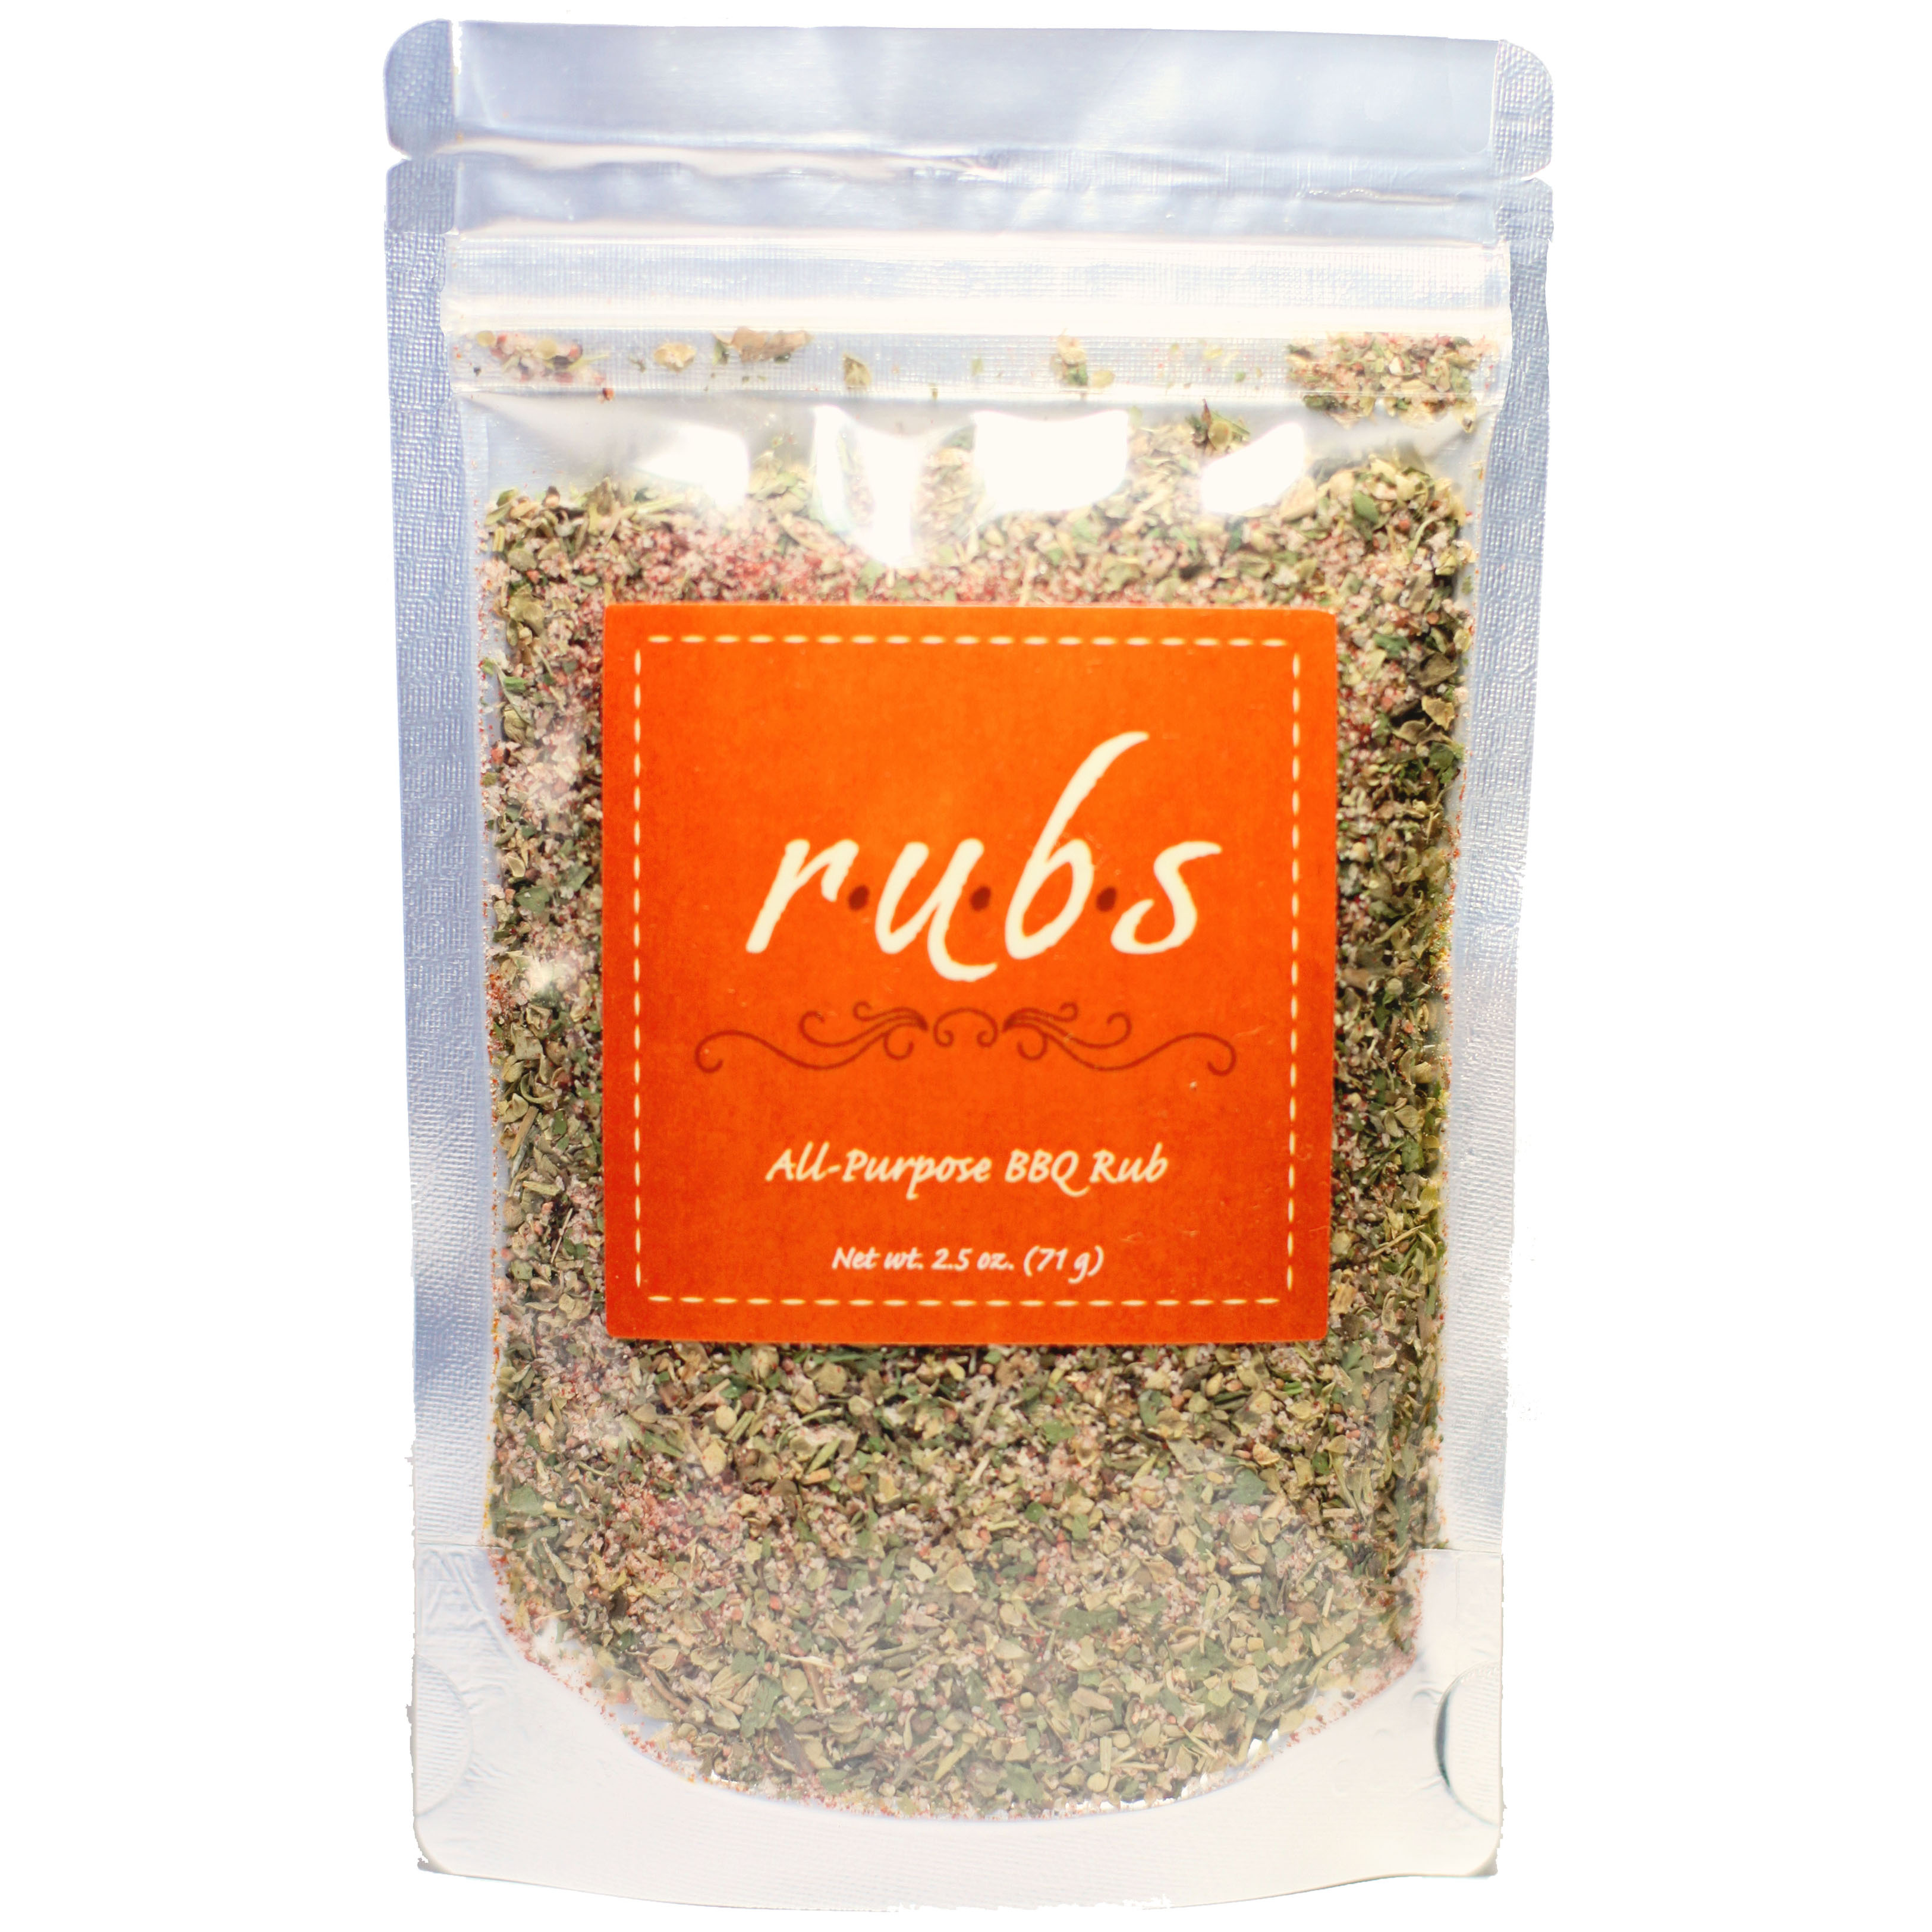 Home / Products / All Purpose BBQ Rub